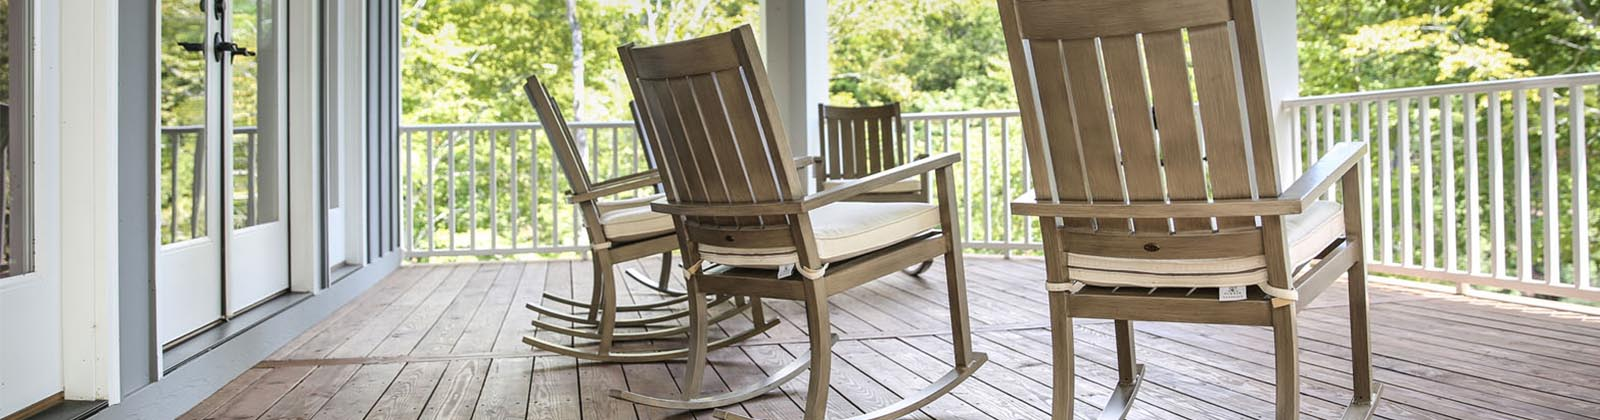 four rocking chairs on a front porch